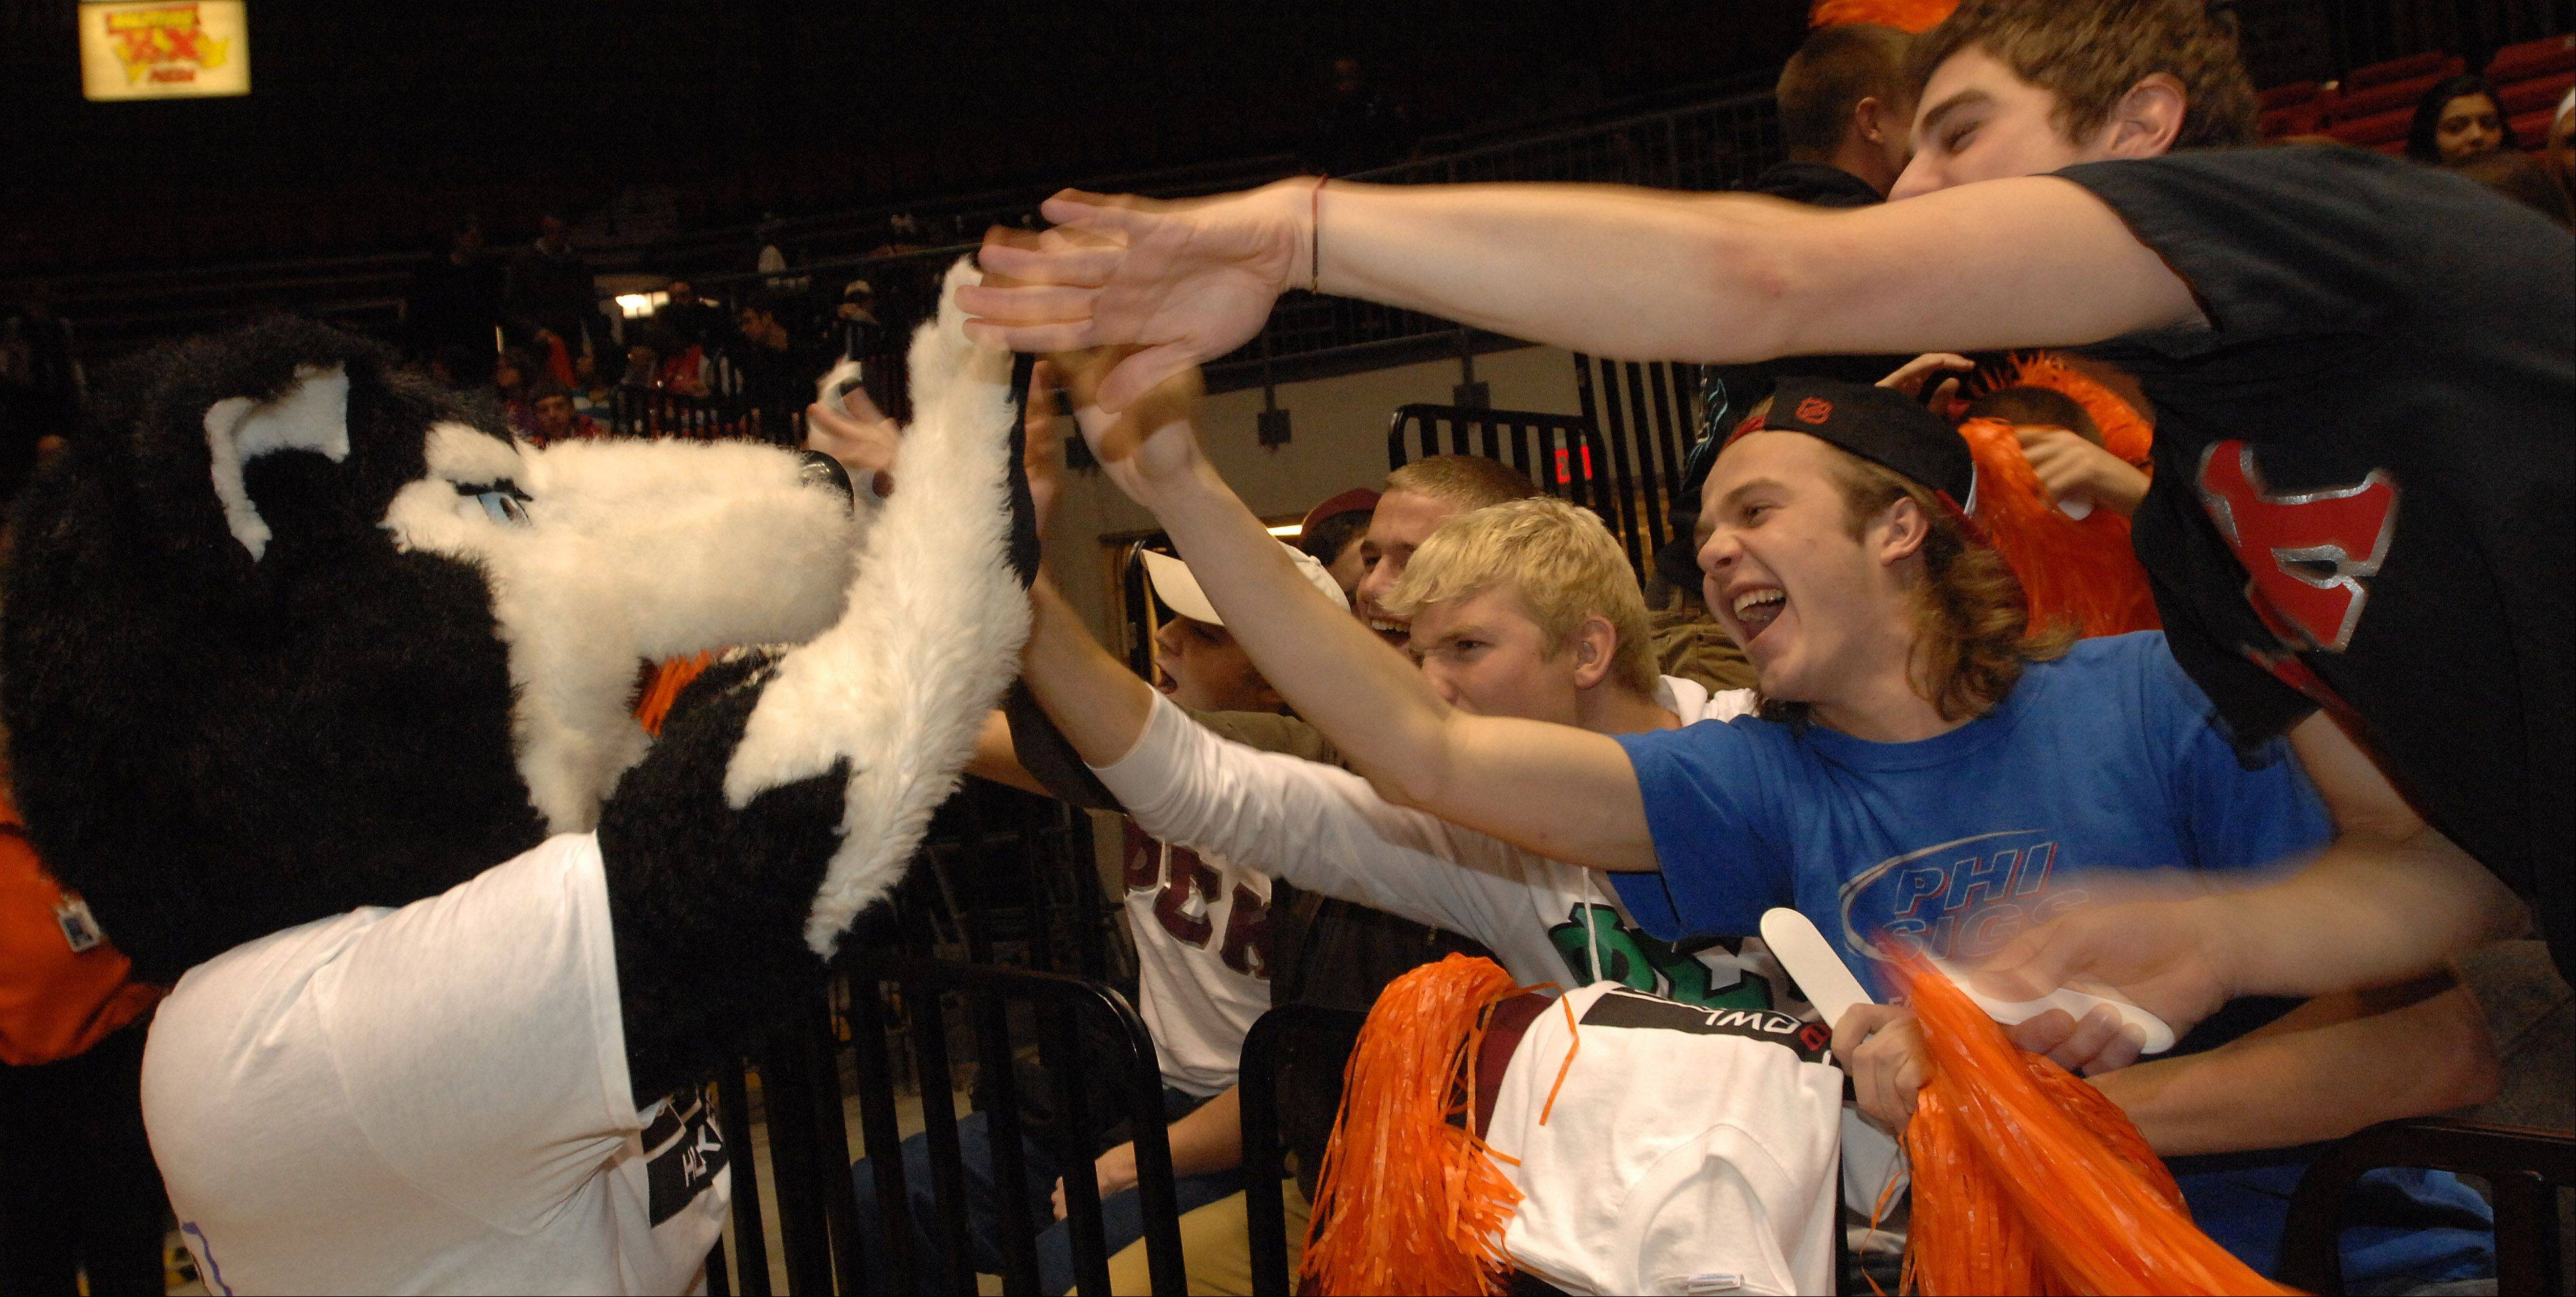 NIU Husky fans give the school a mascot a high-five during an Orange Bowl pep rally held as part of a NIU basketball game on Wednesday evening.